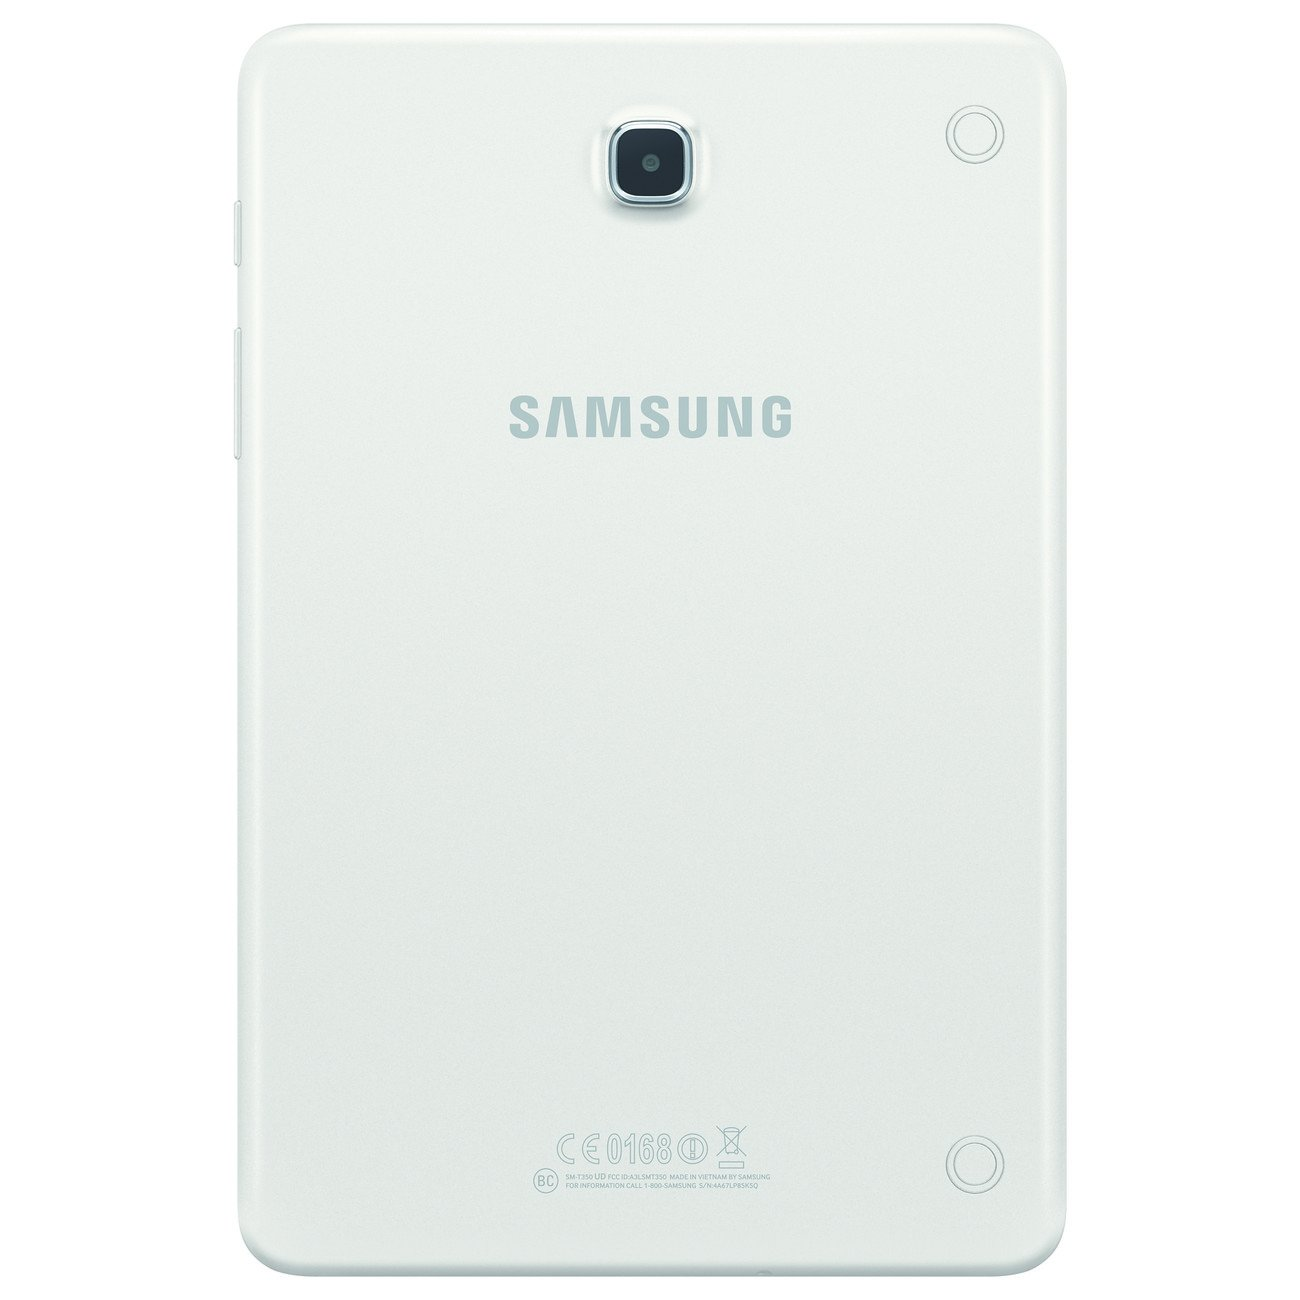 Image result for Samsung Tab A SM-T355YZWA